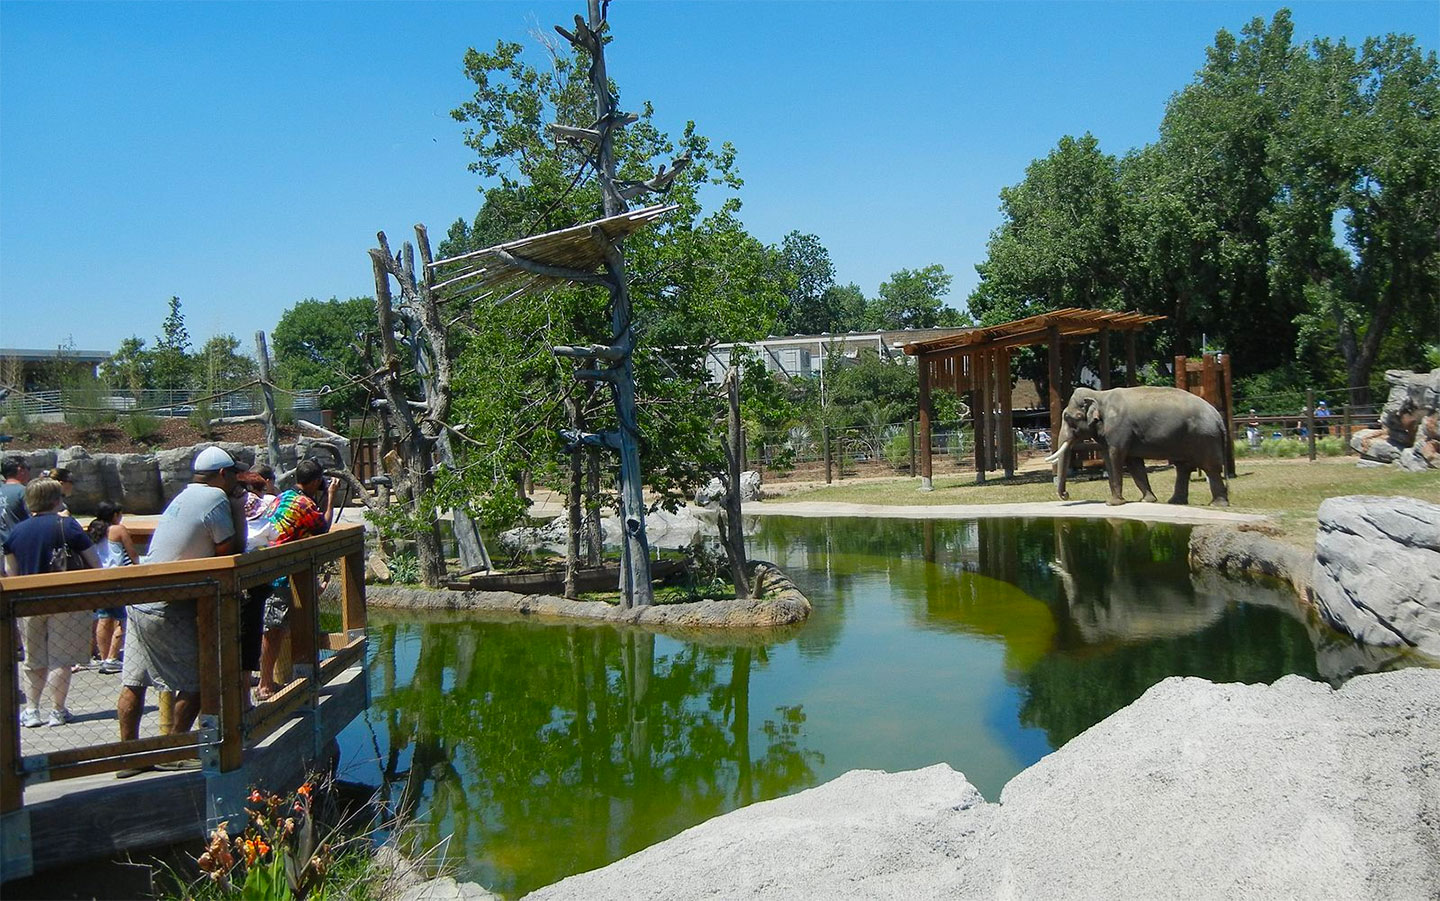 Things to Do in Denver - Denver Zoo